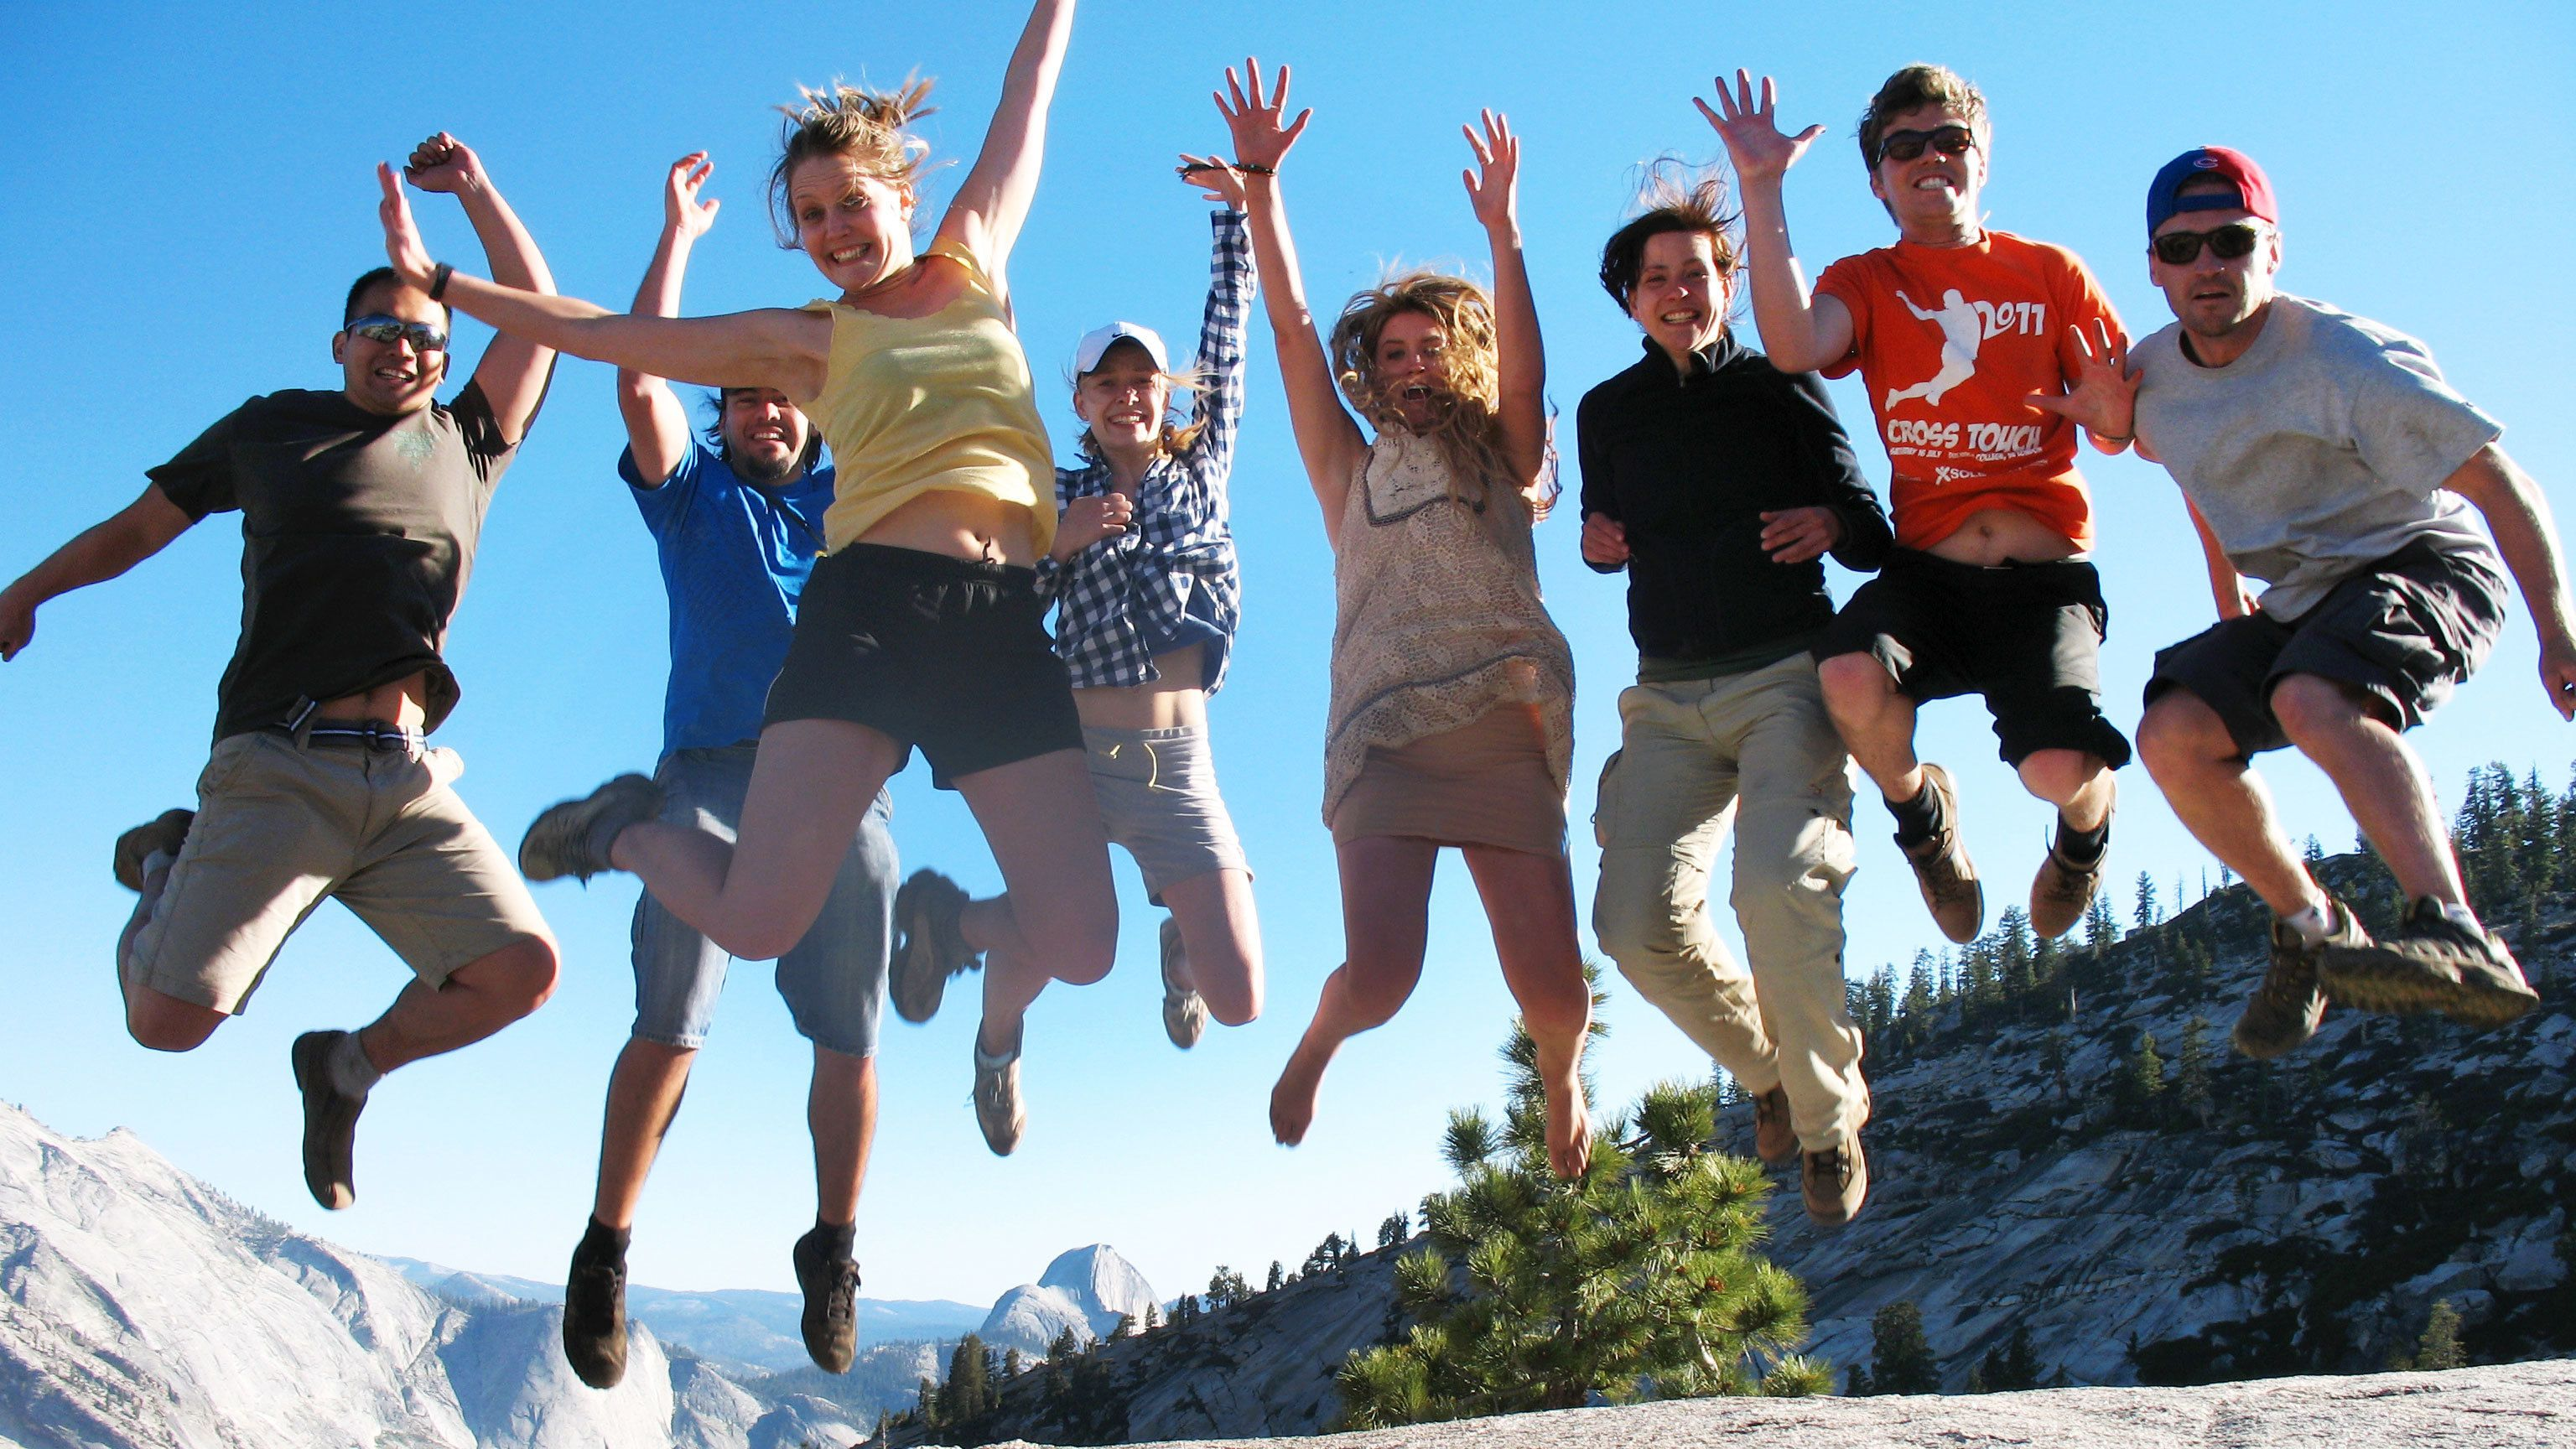 Group of people jumping in the air at Yosemite National Park